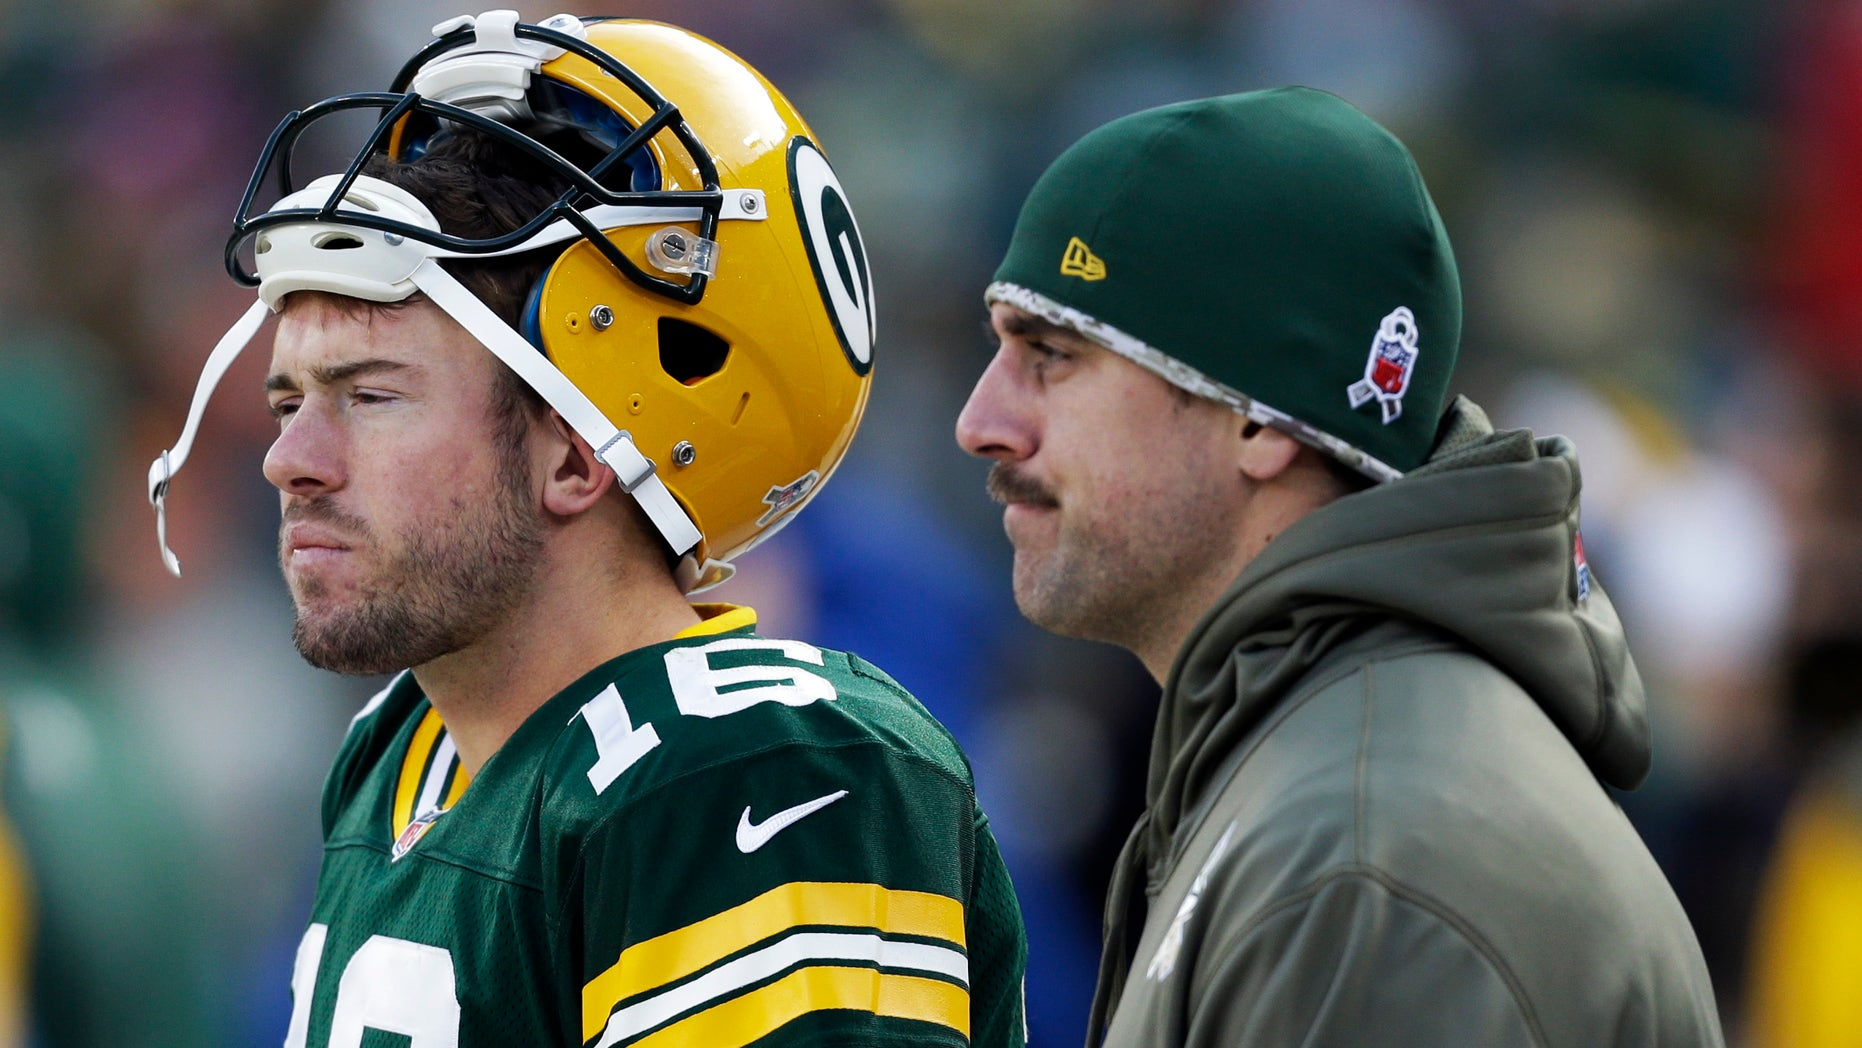 Green Bay Packers' Aaron Rodgers and Scott Tolzien watch from the sidelines during the second half of an NFL football game against the Philadelphia Eagles Sunday, Nov. 10, 2013, in Green Bay, Wis. The Eagles won 27-13. (AP Photo/Mike Roemer)